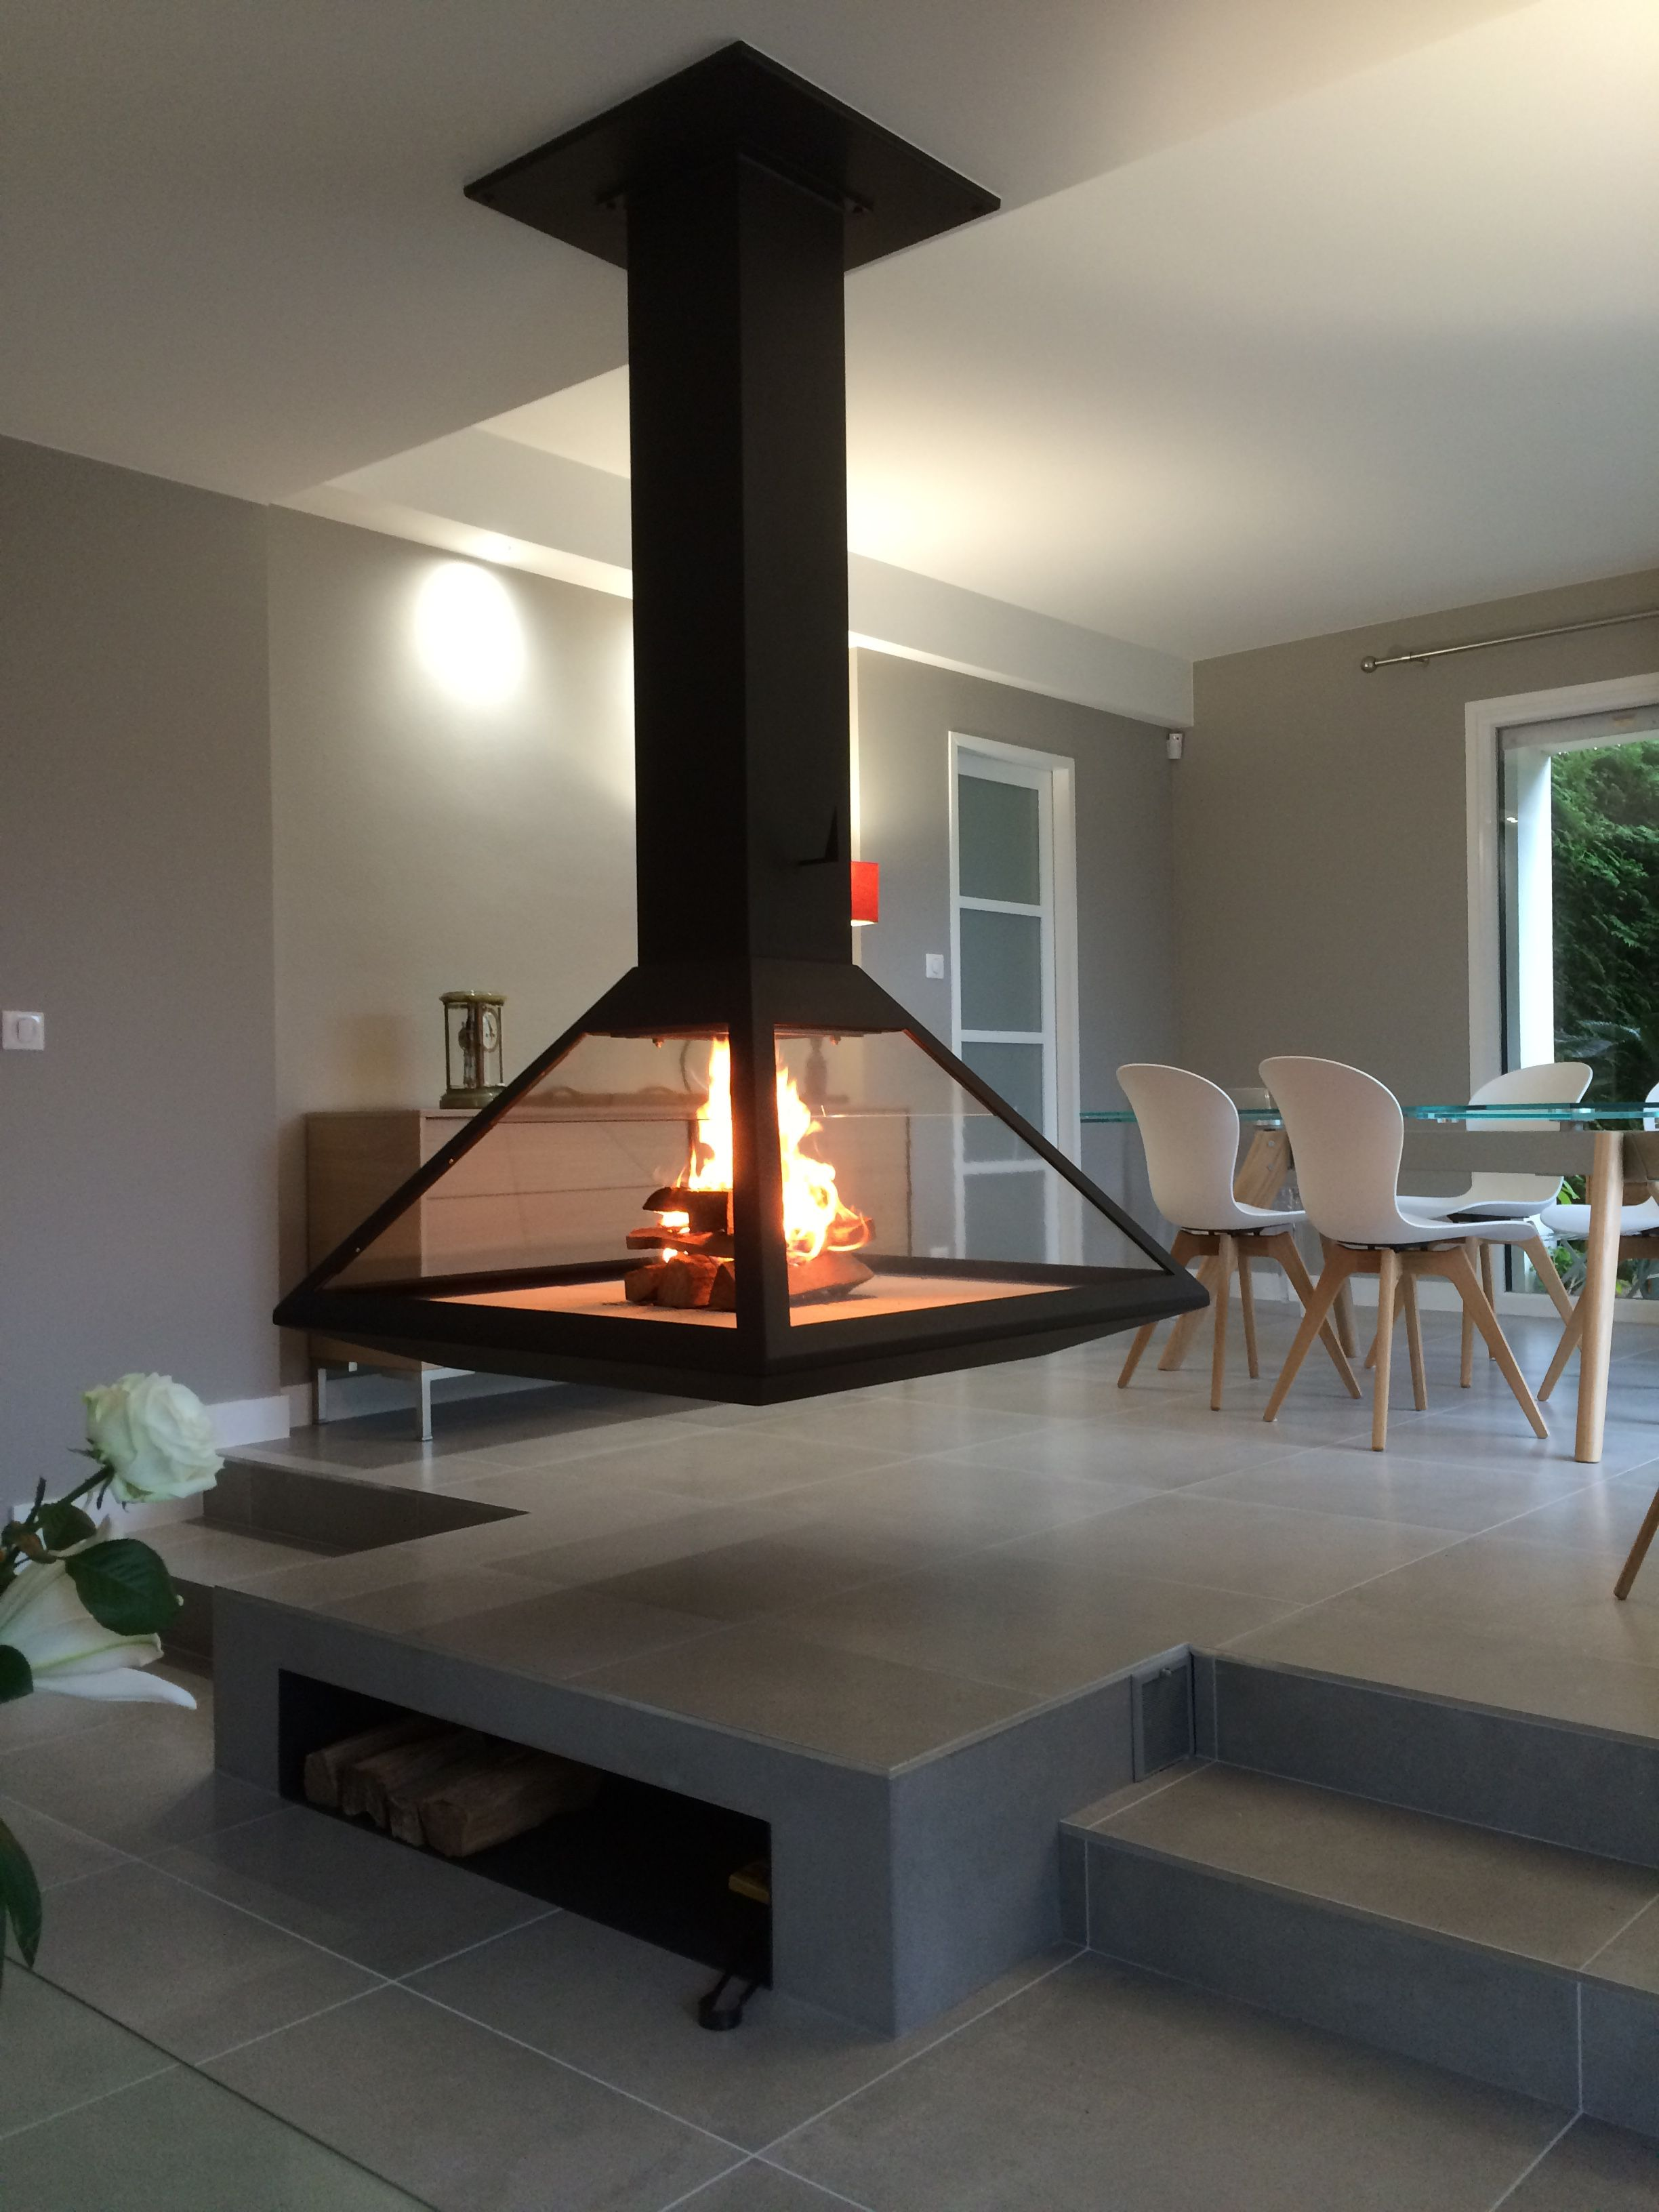 Poele A Bois Design Suspendu Poêle À Bois Design Fireplace City Home Wood Stoves Poele 1000